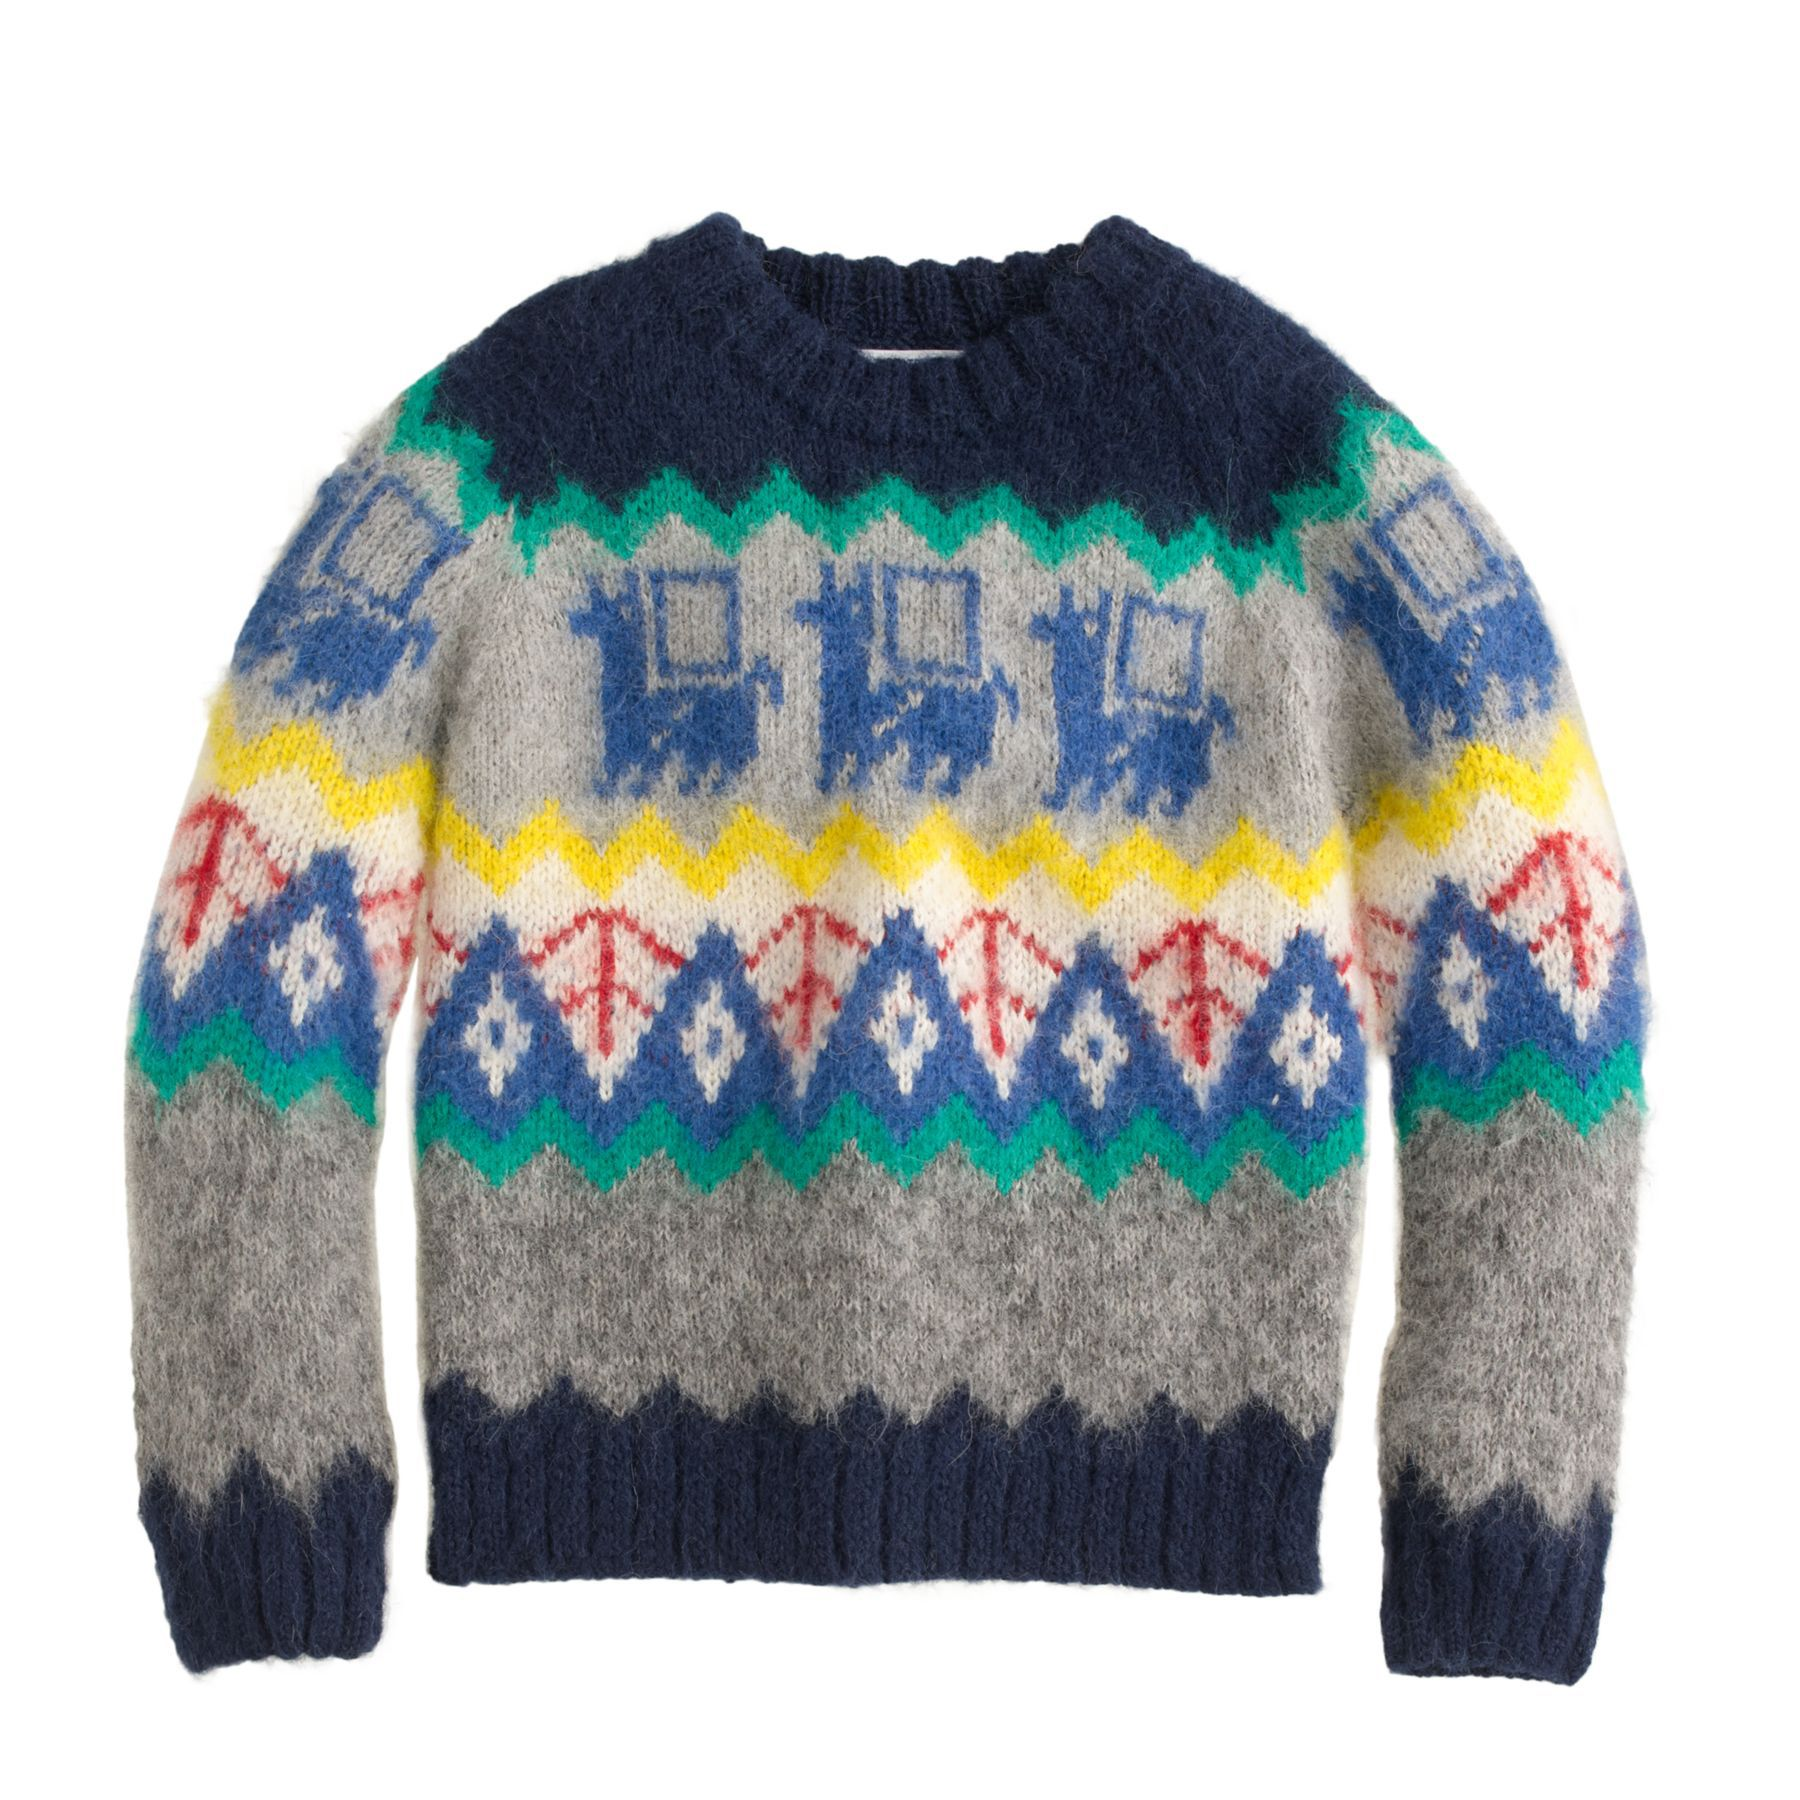 Kids' Industry of All Nations hand-knit sweater in navy jacquard at J.Crew.